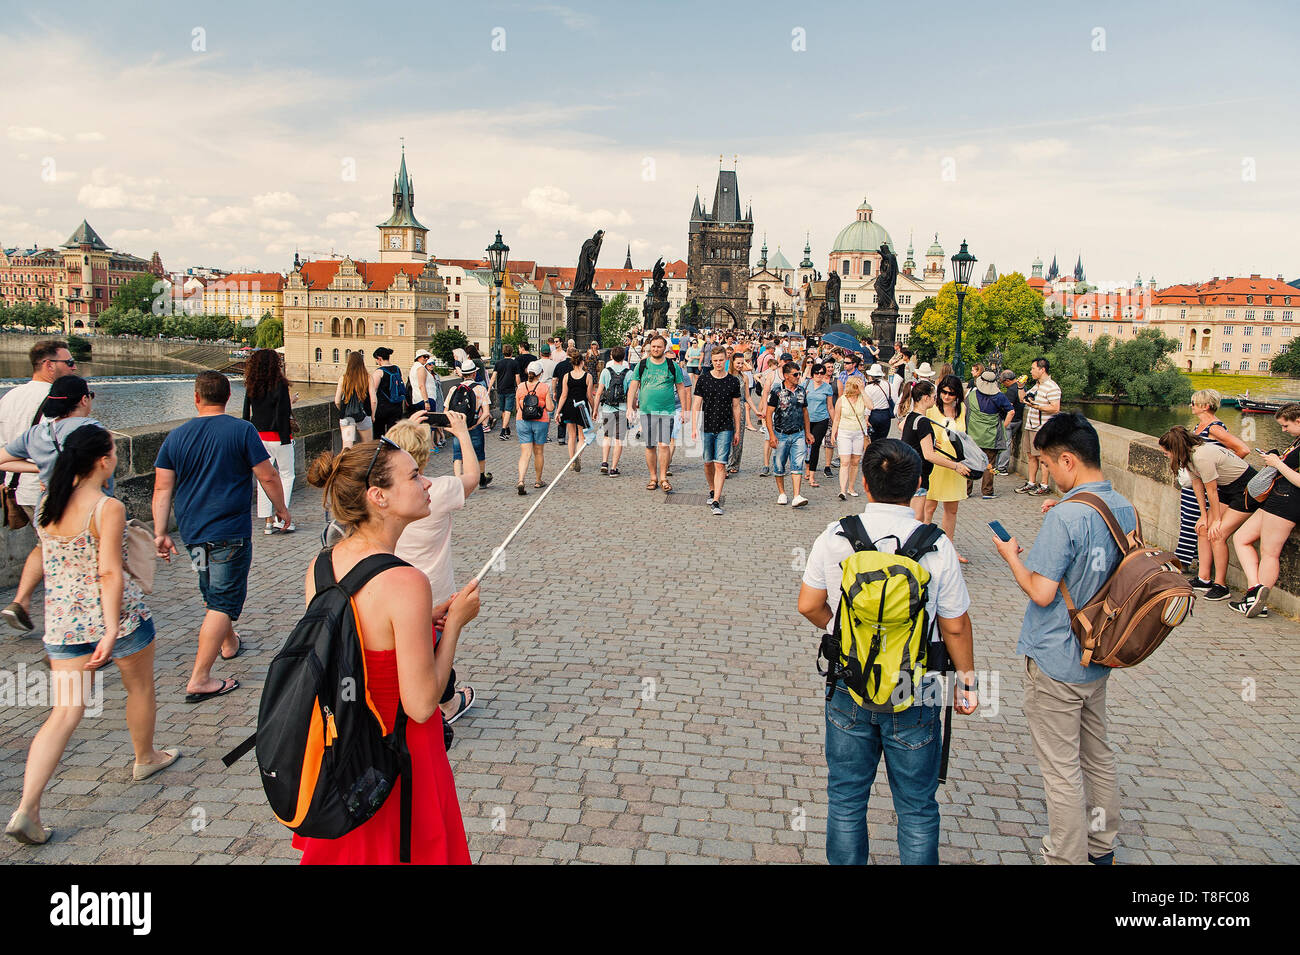 Prague, Czech Republic - June 03, 2017: people on Charles bridge over Vltava river with statues, towers, houses on blue sky. Tourist destination, travelling, wanderlust, vacation concept - Stock Image